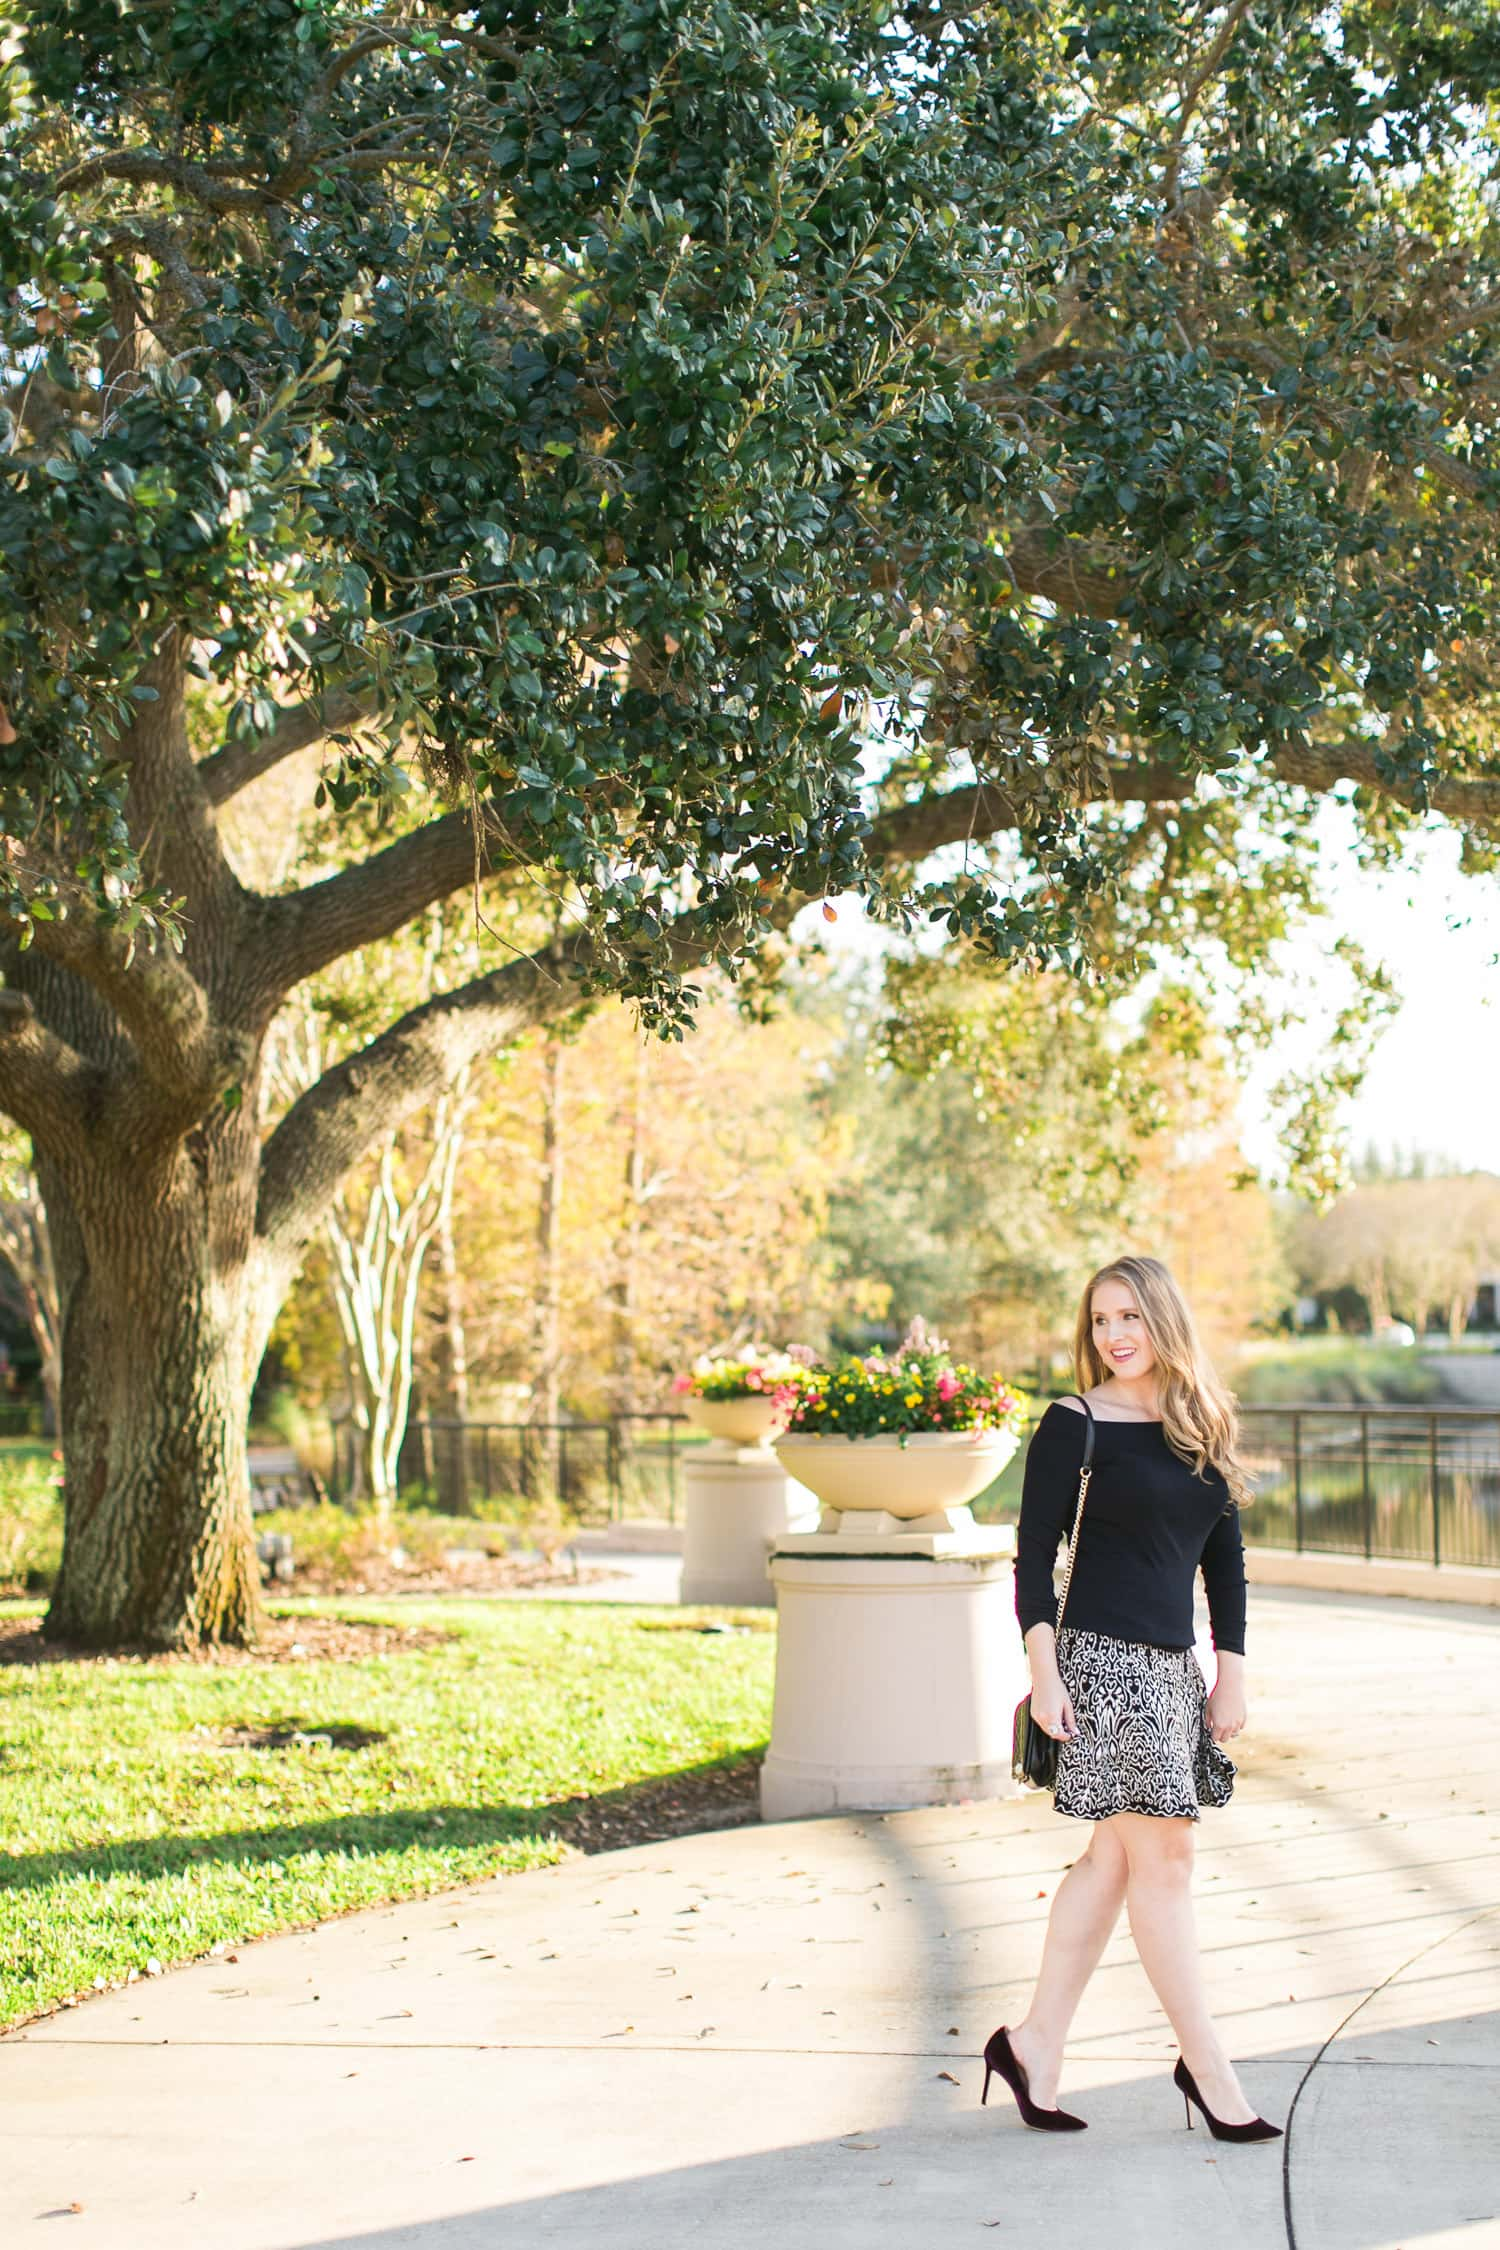 The parks in Baldwin Park in Orlando are so beautiful! Planning a trip to Orlando? I've rounded up the top 10 things to do in Orlando, Florida, that are guaranteed to make your trip a success. Whether you're moving to Orlando or just headed in on vacation, you will LOVE this list of fun activities in Orlando by Florida travel blogger Ashley Brooke Nicholas #CORTatHome sponsored by CORT Furniture | affordable travel tips, orlando vacation tips, vacation tips